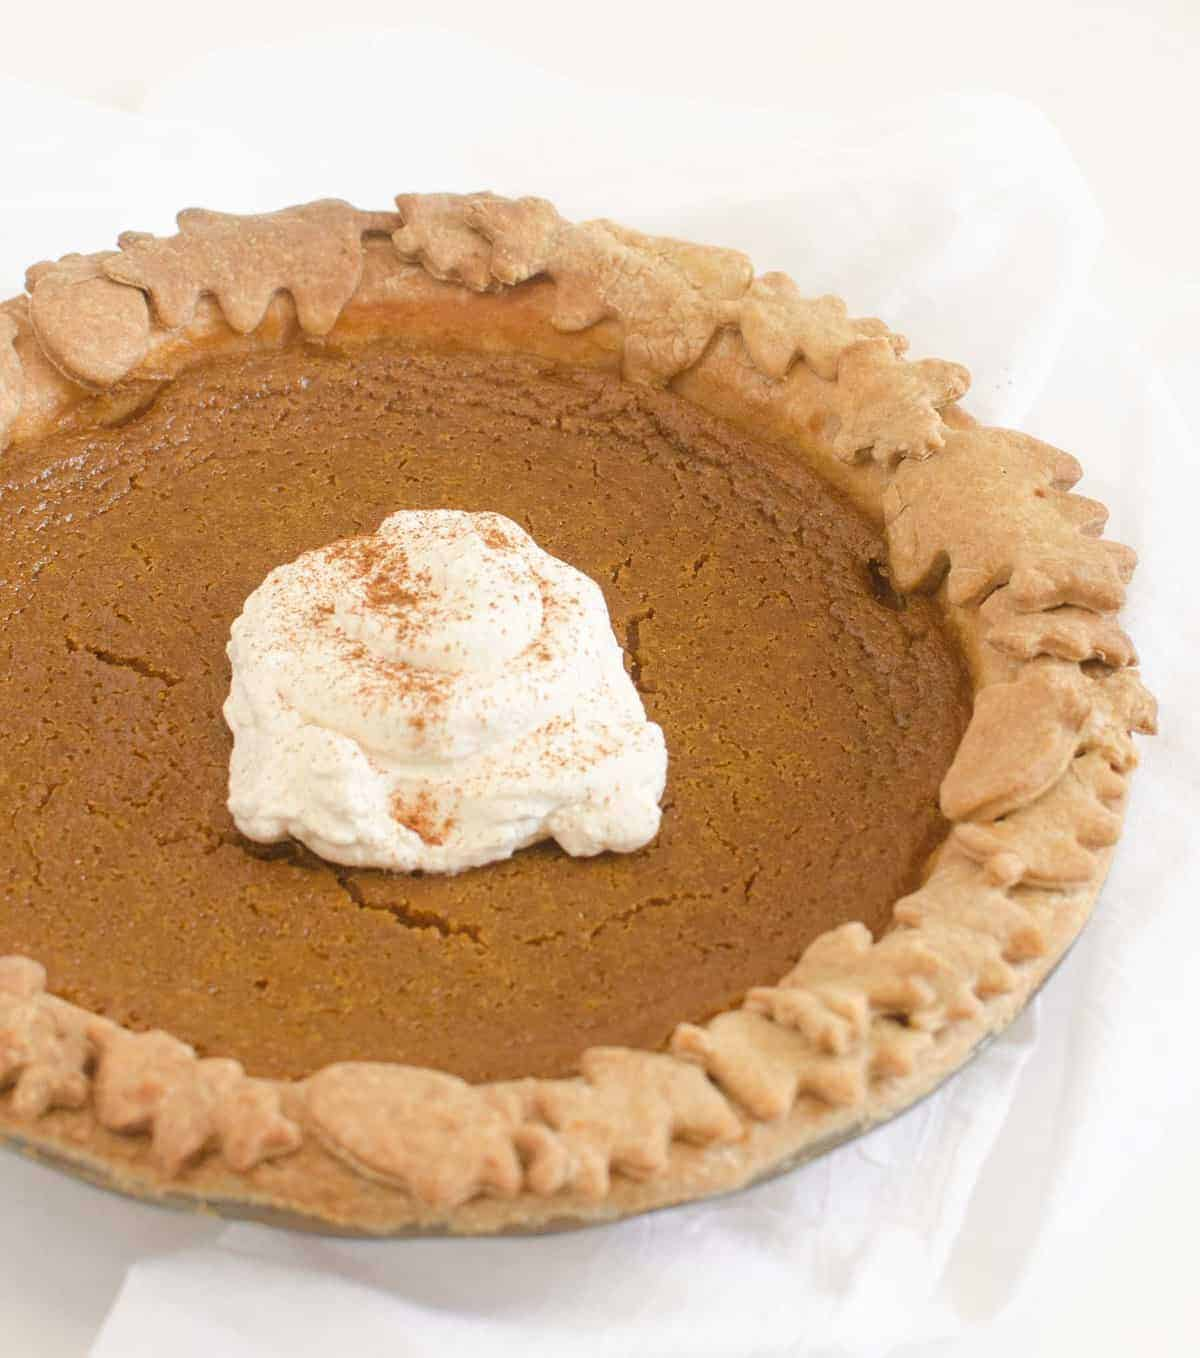 Healthy pumpkin pie recipe in a whole wheat crust sweetened with real cream and maple syrup. One of my favorite whole food pie desserts!